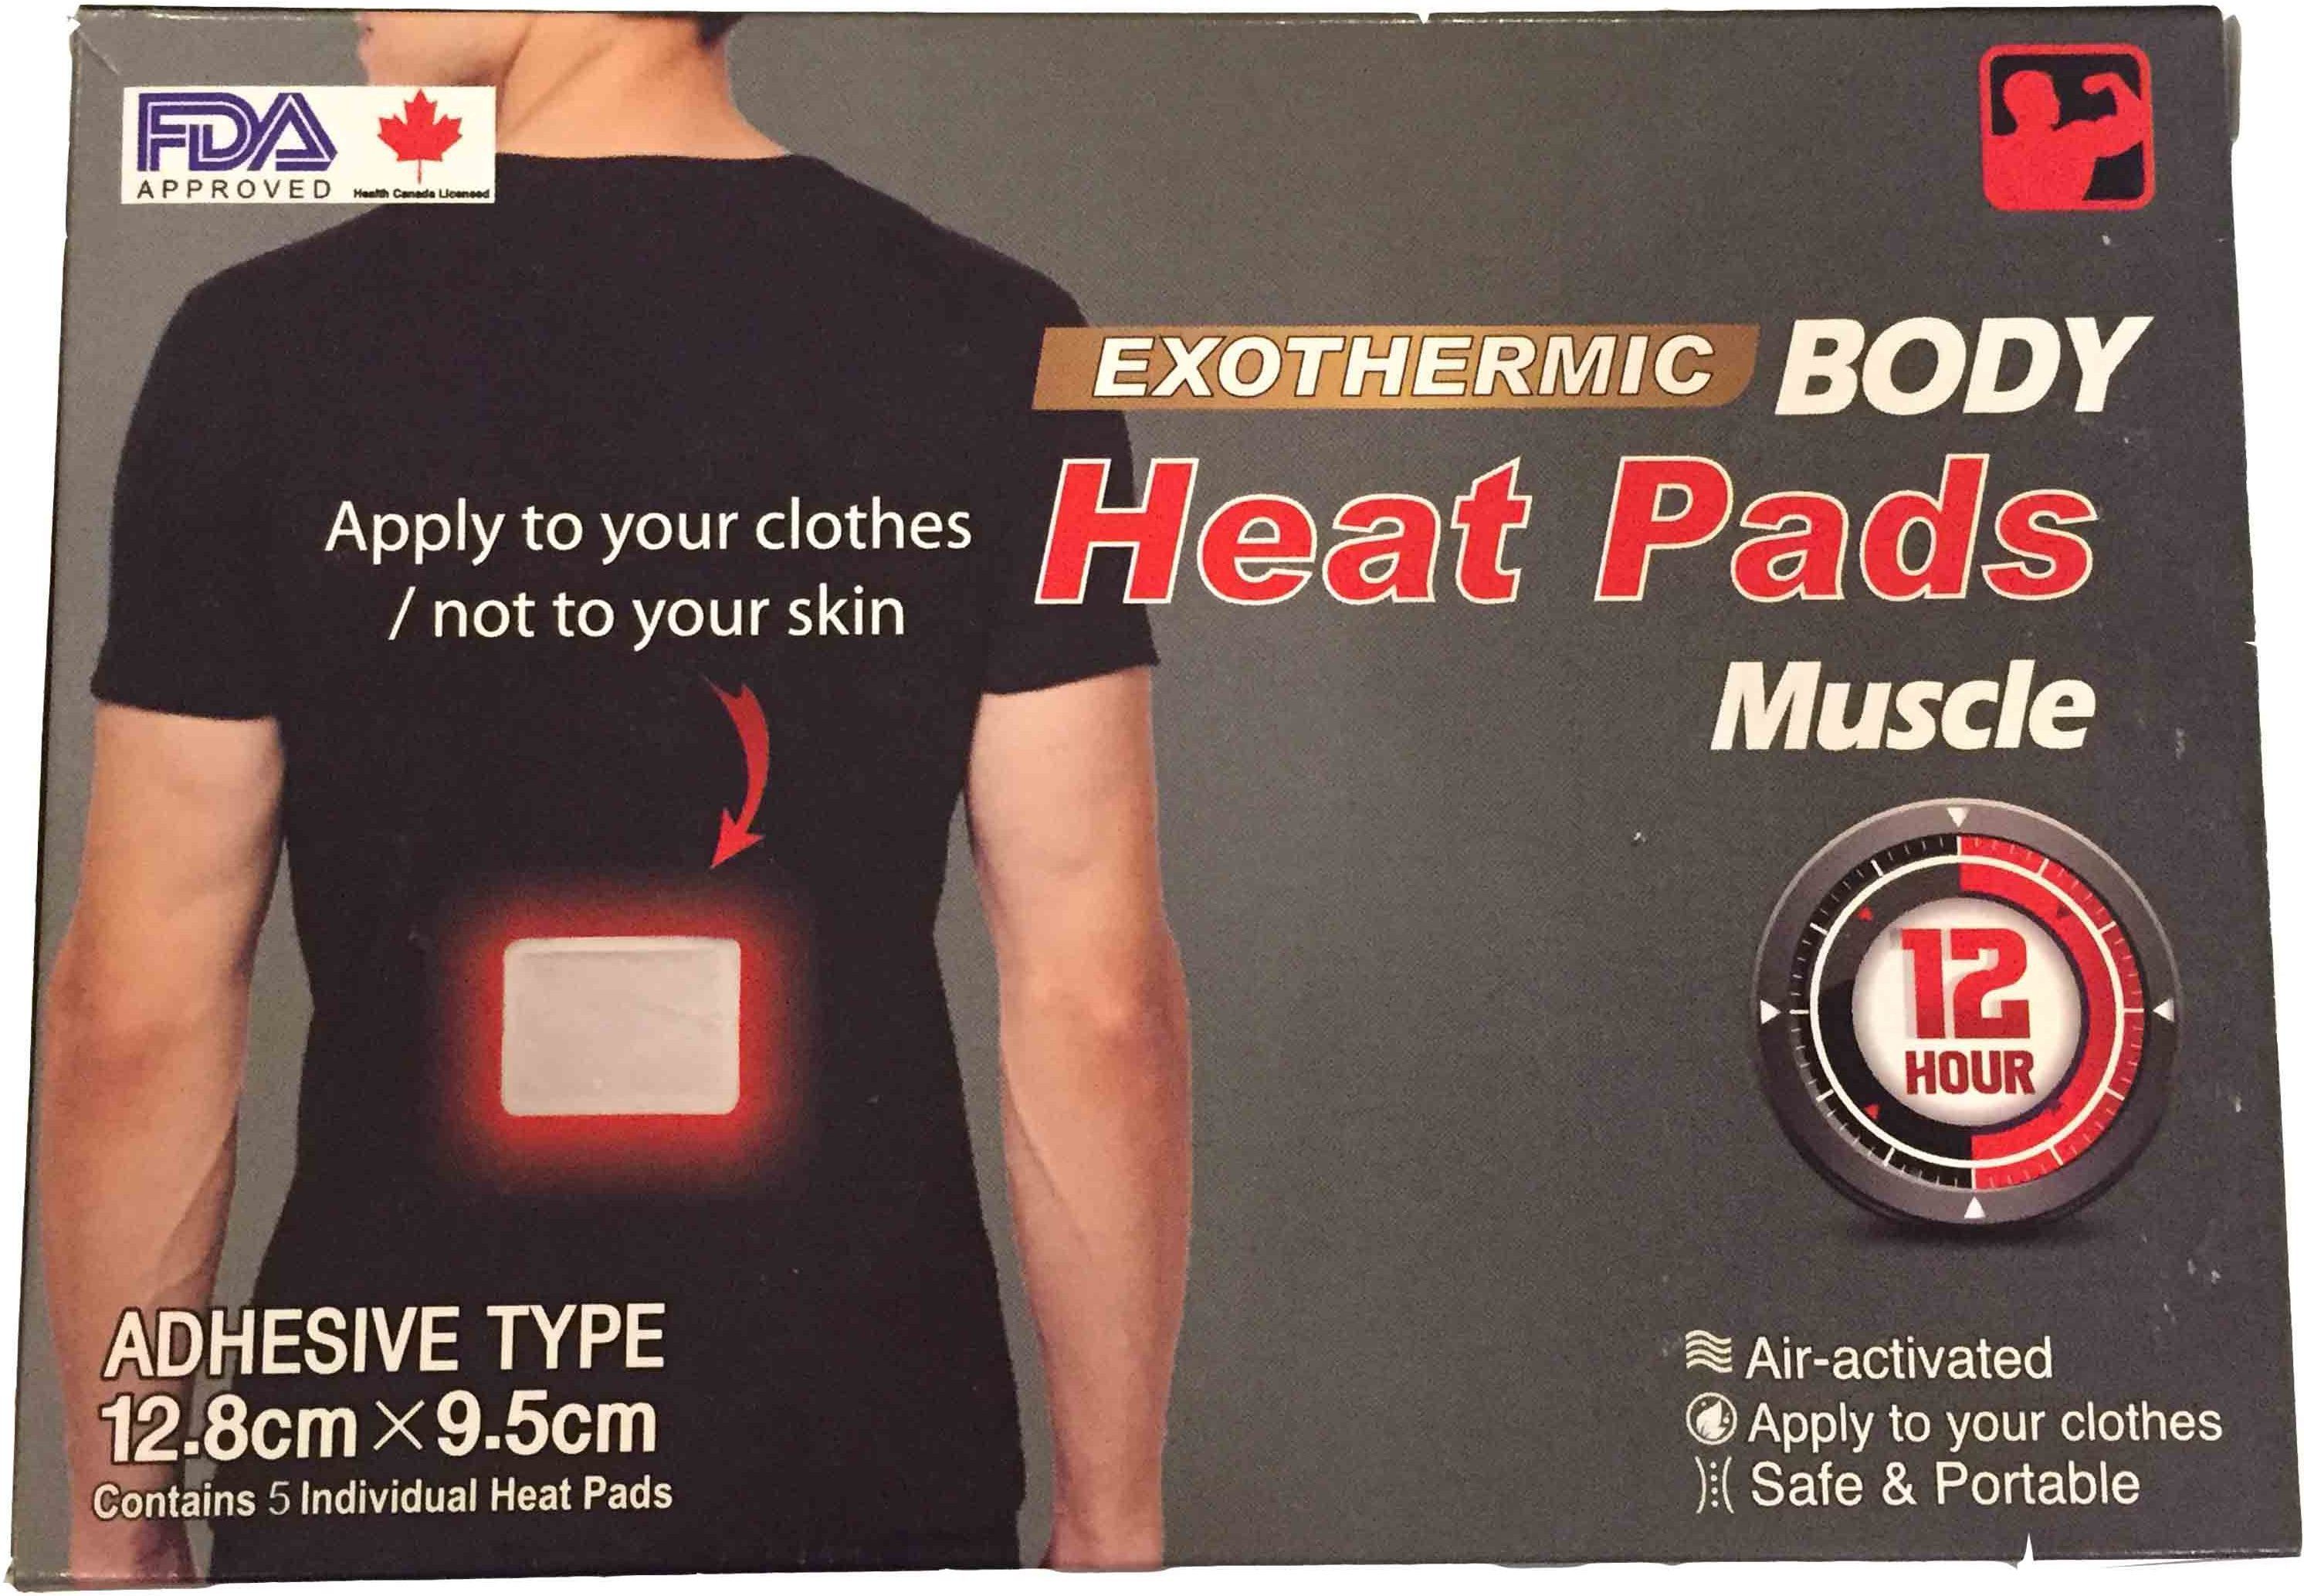 BrandMeUp Exothermic Body - Adhesive Type Heating Pad